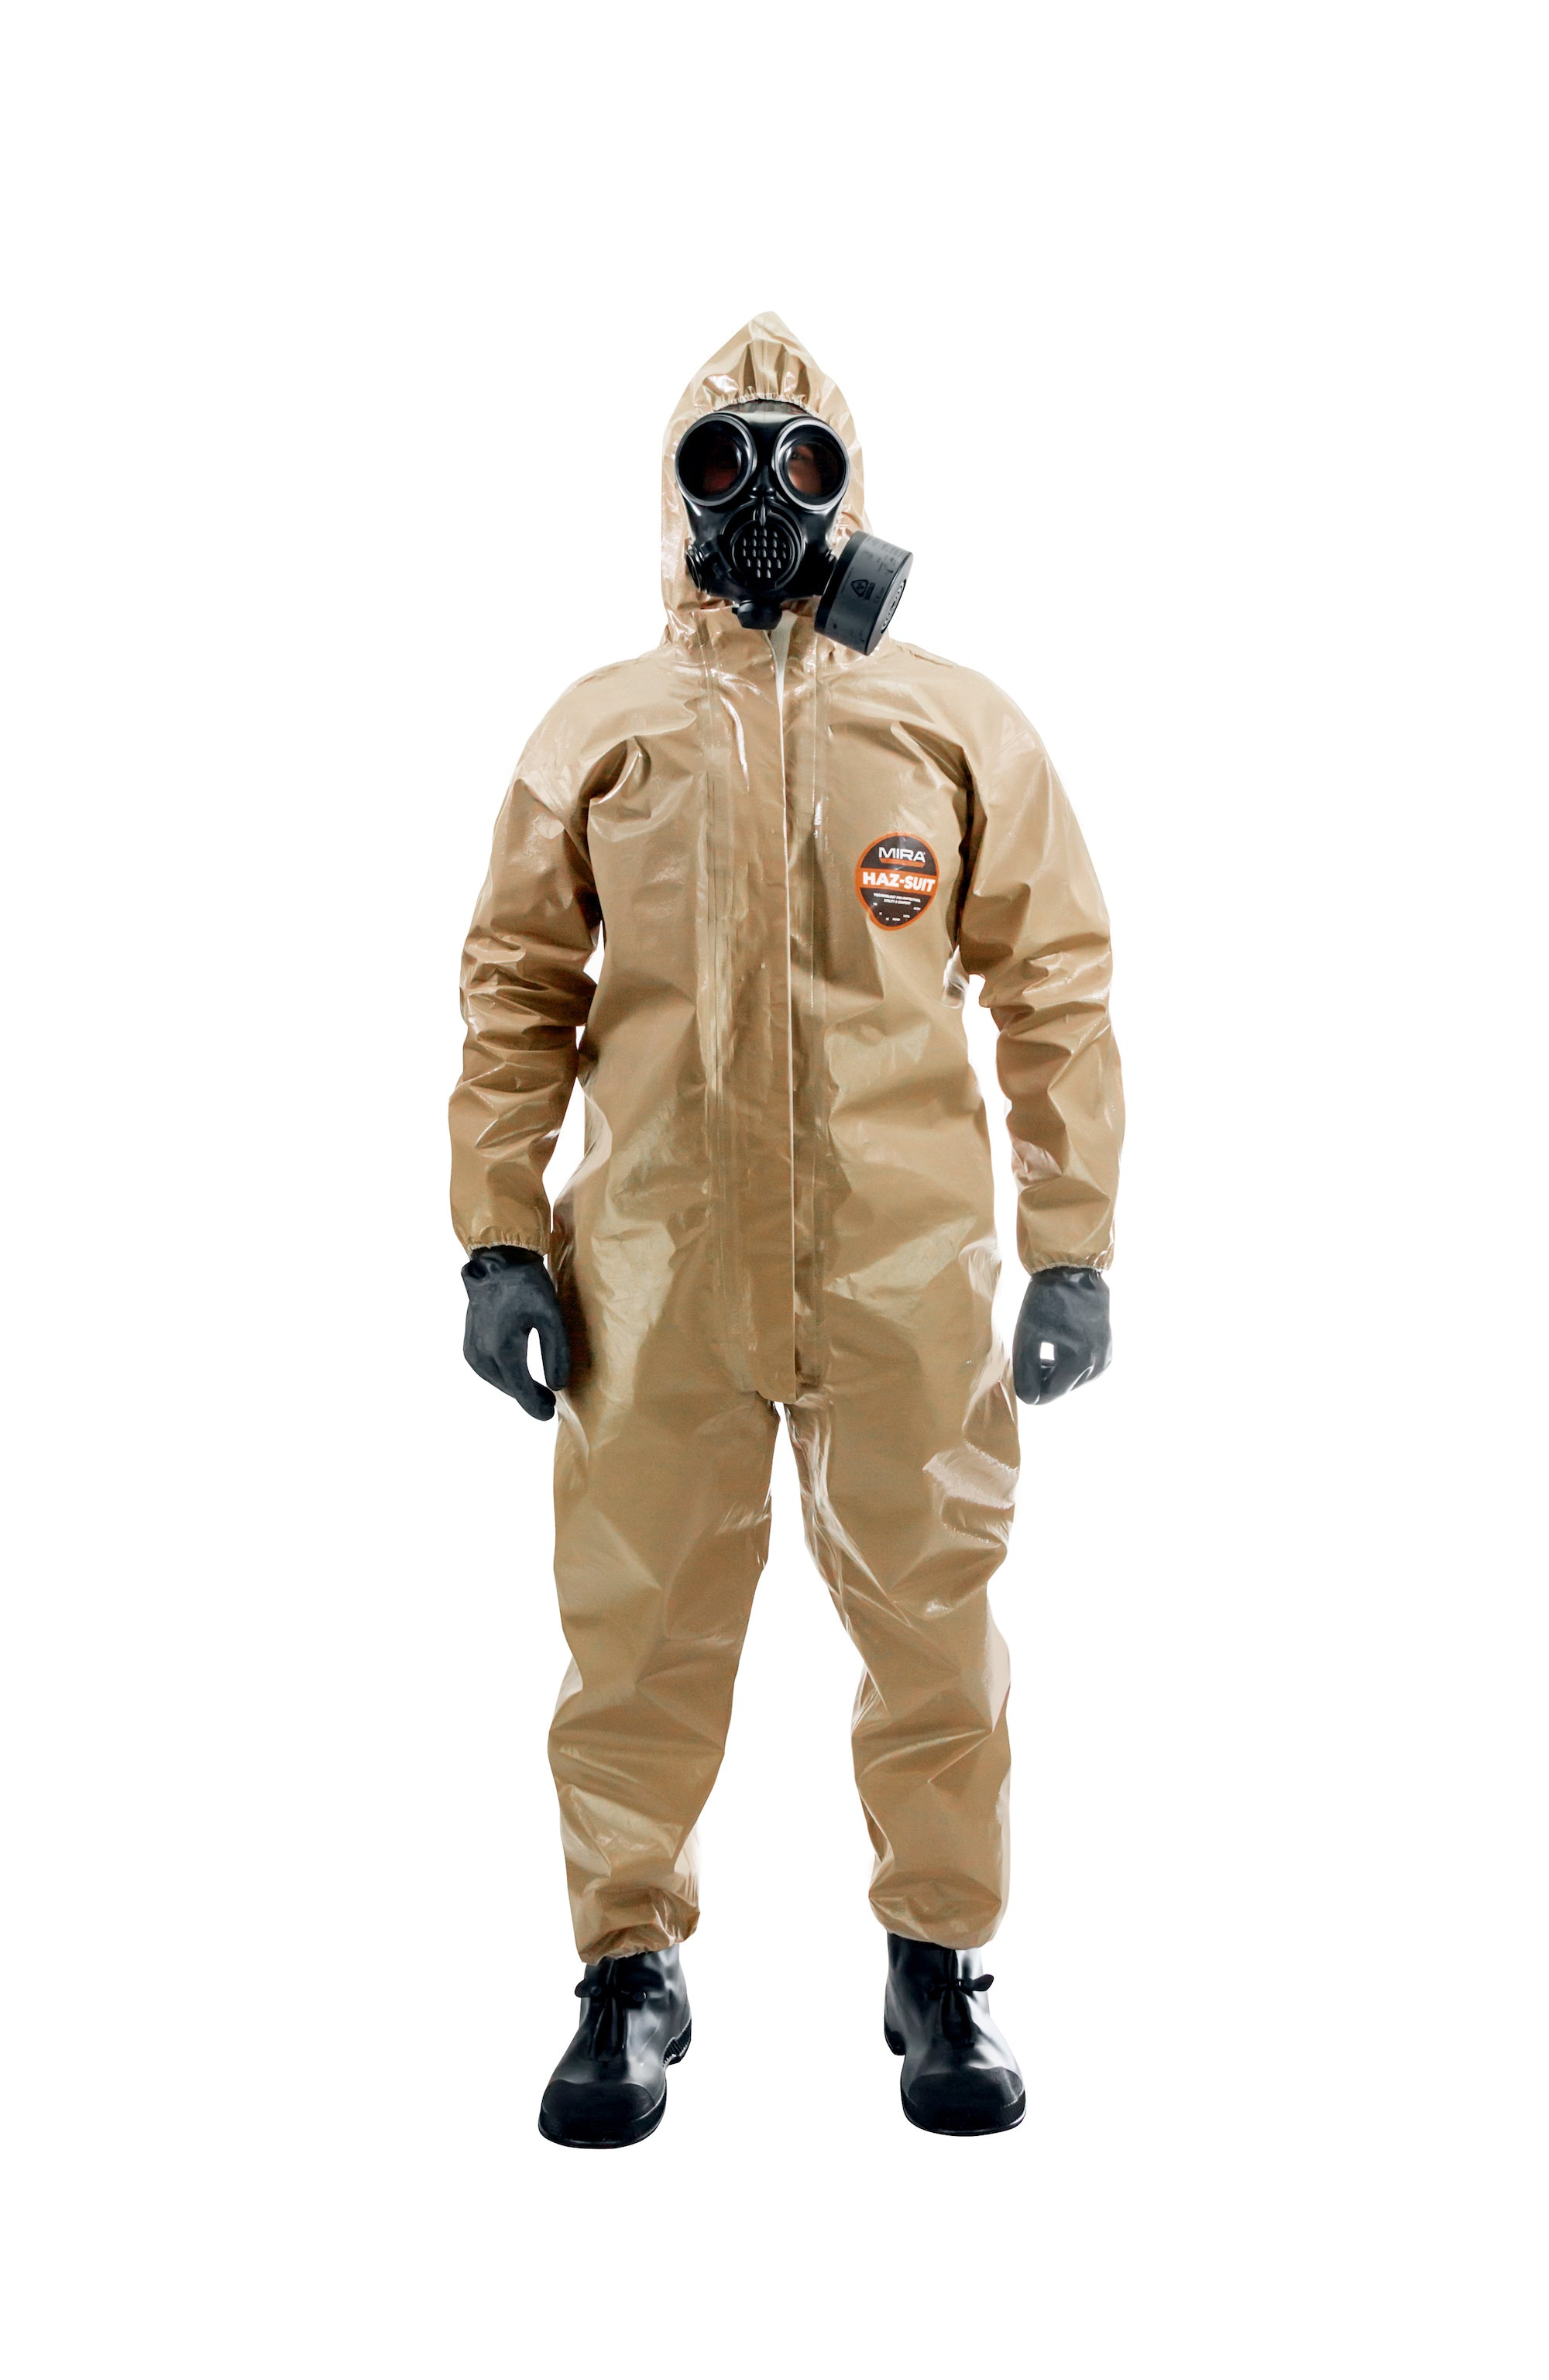 Man wearing a CM-7M gas mask with the HAZ-SUIT HAZMAT Suit